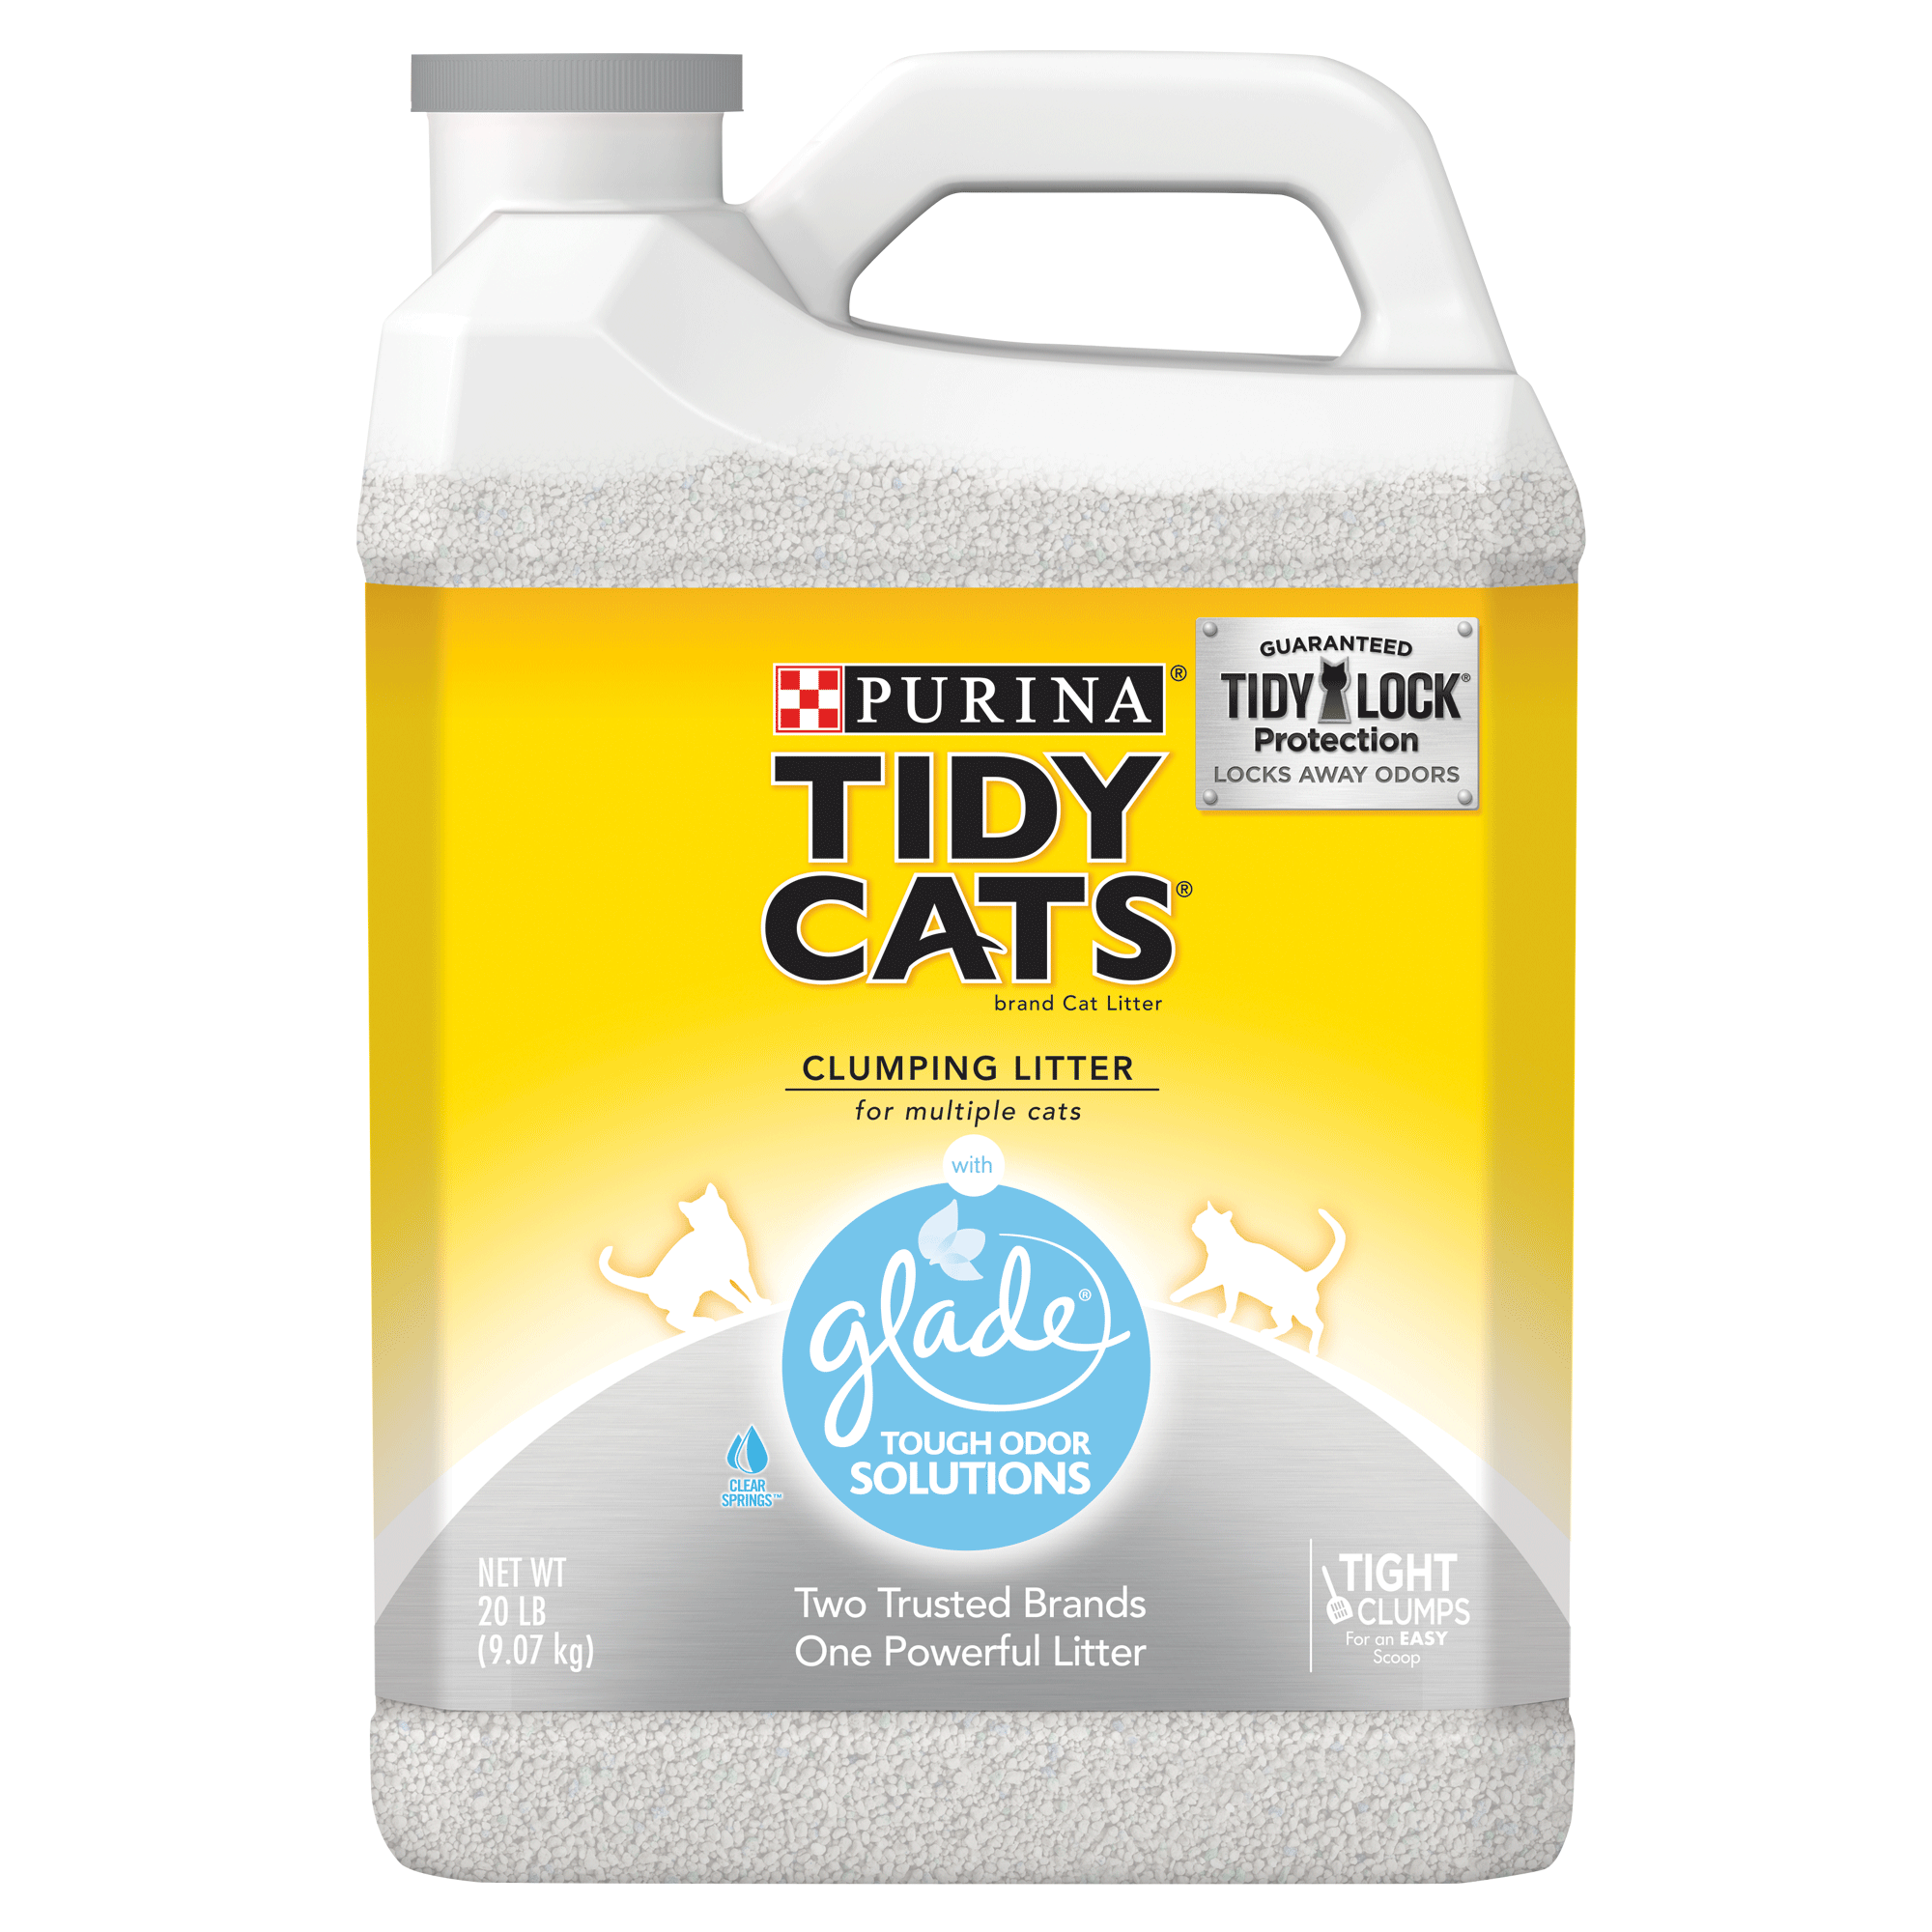 Purina Tidy Cats Glade Tough Odor Solutions Clear Springs Clumping Cat Litter - 20 lb. Jug